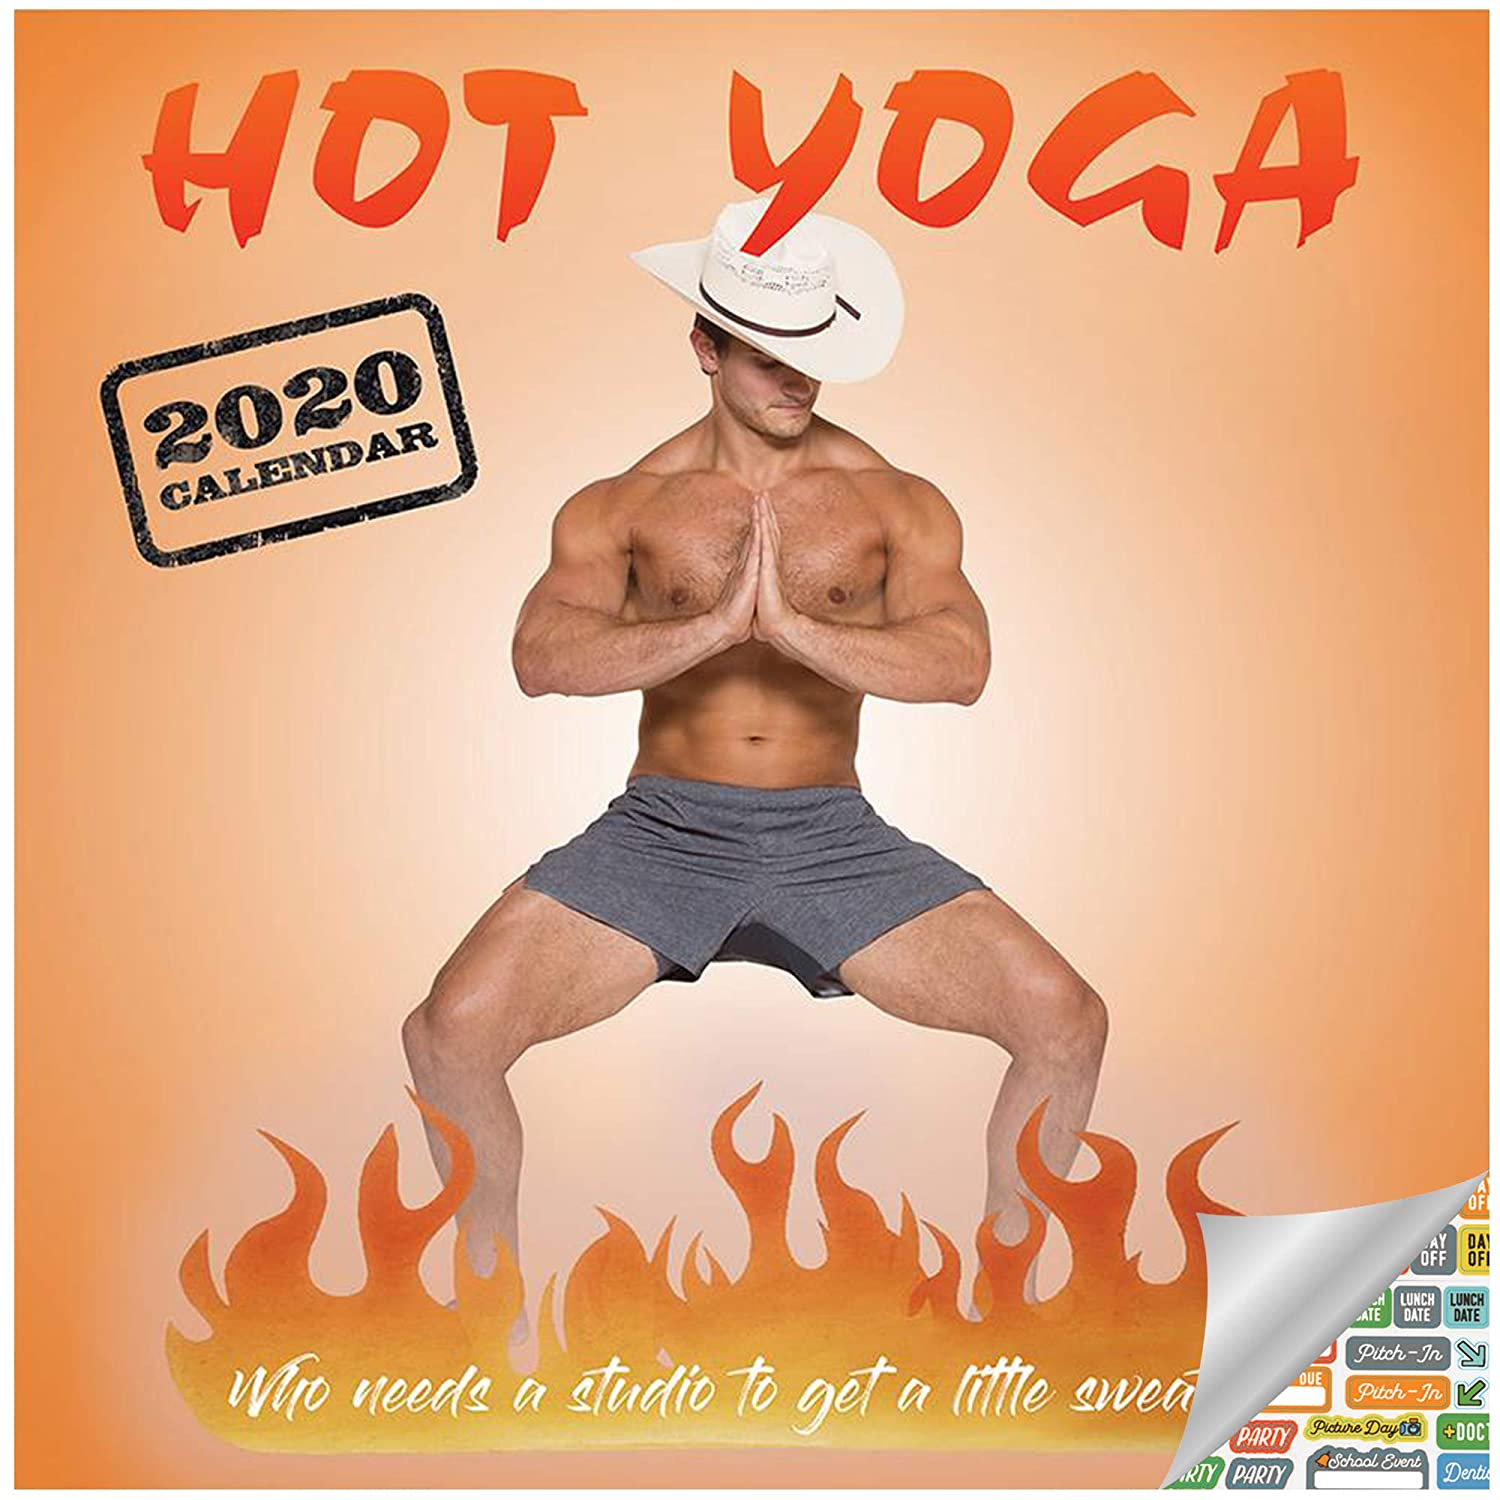 Hot Men Doing Yoga Calendar 2020 Set - Deluxe 2020 Hot Yoga Wall Calendar with Over 100 Calendar Stickers (Yoga Gifts, Office Supplies)